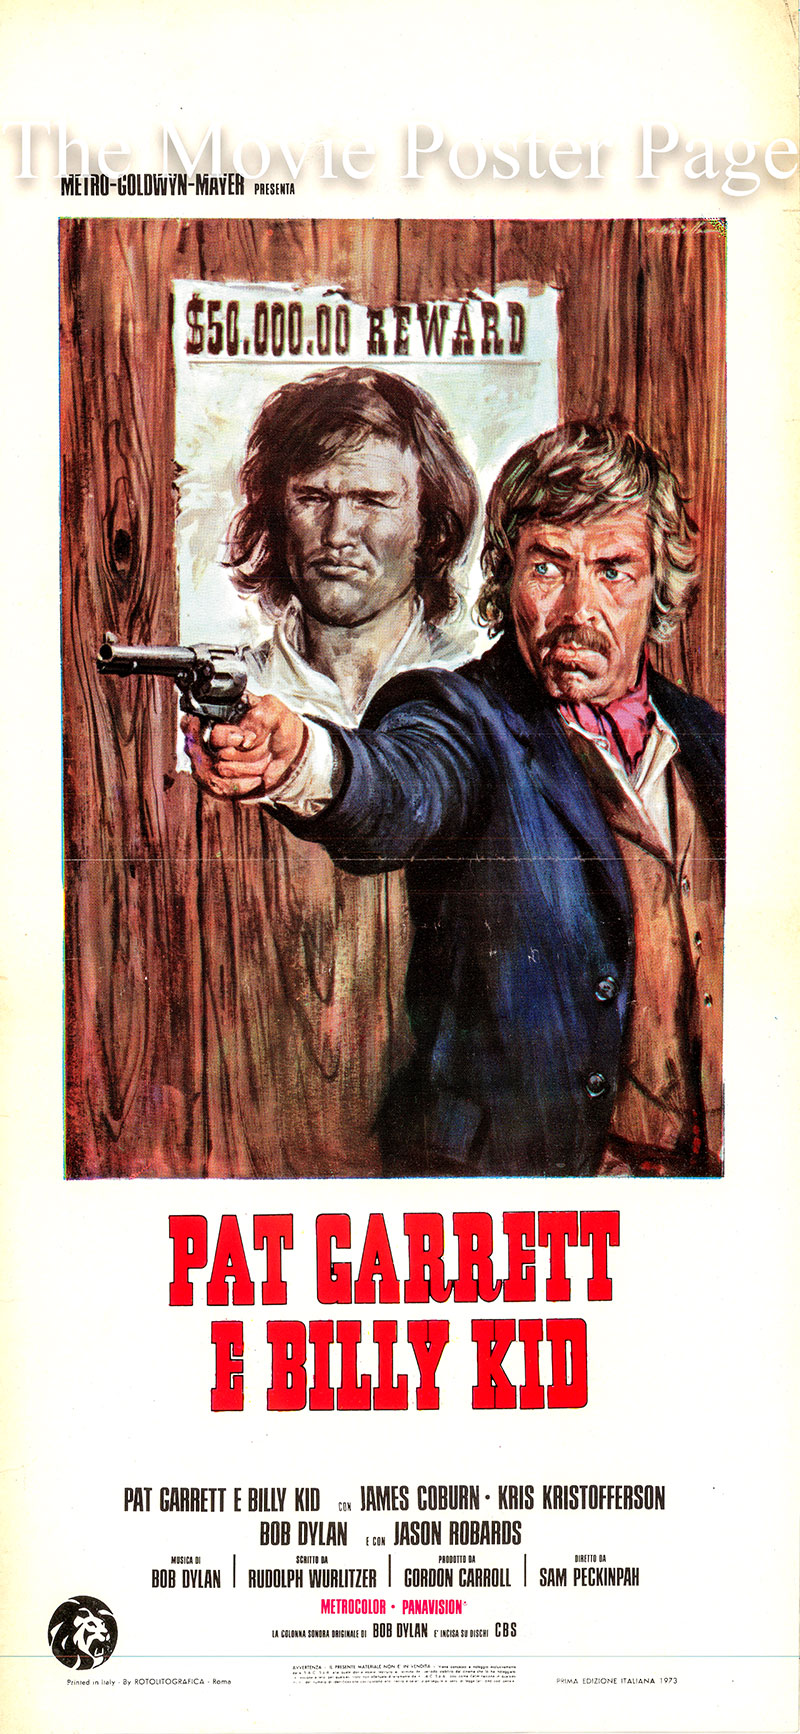 Pictured is an Italian locandina promotional poster for the 1973 Sam Peckinpah film Pat Garrett and Billy the Kid, starring Kris Kristofferson as Billy the Kid.